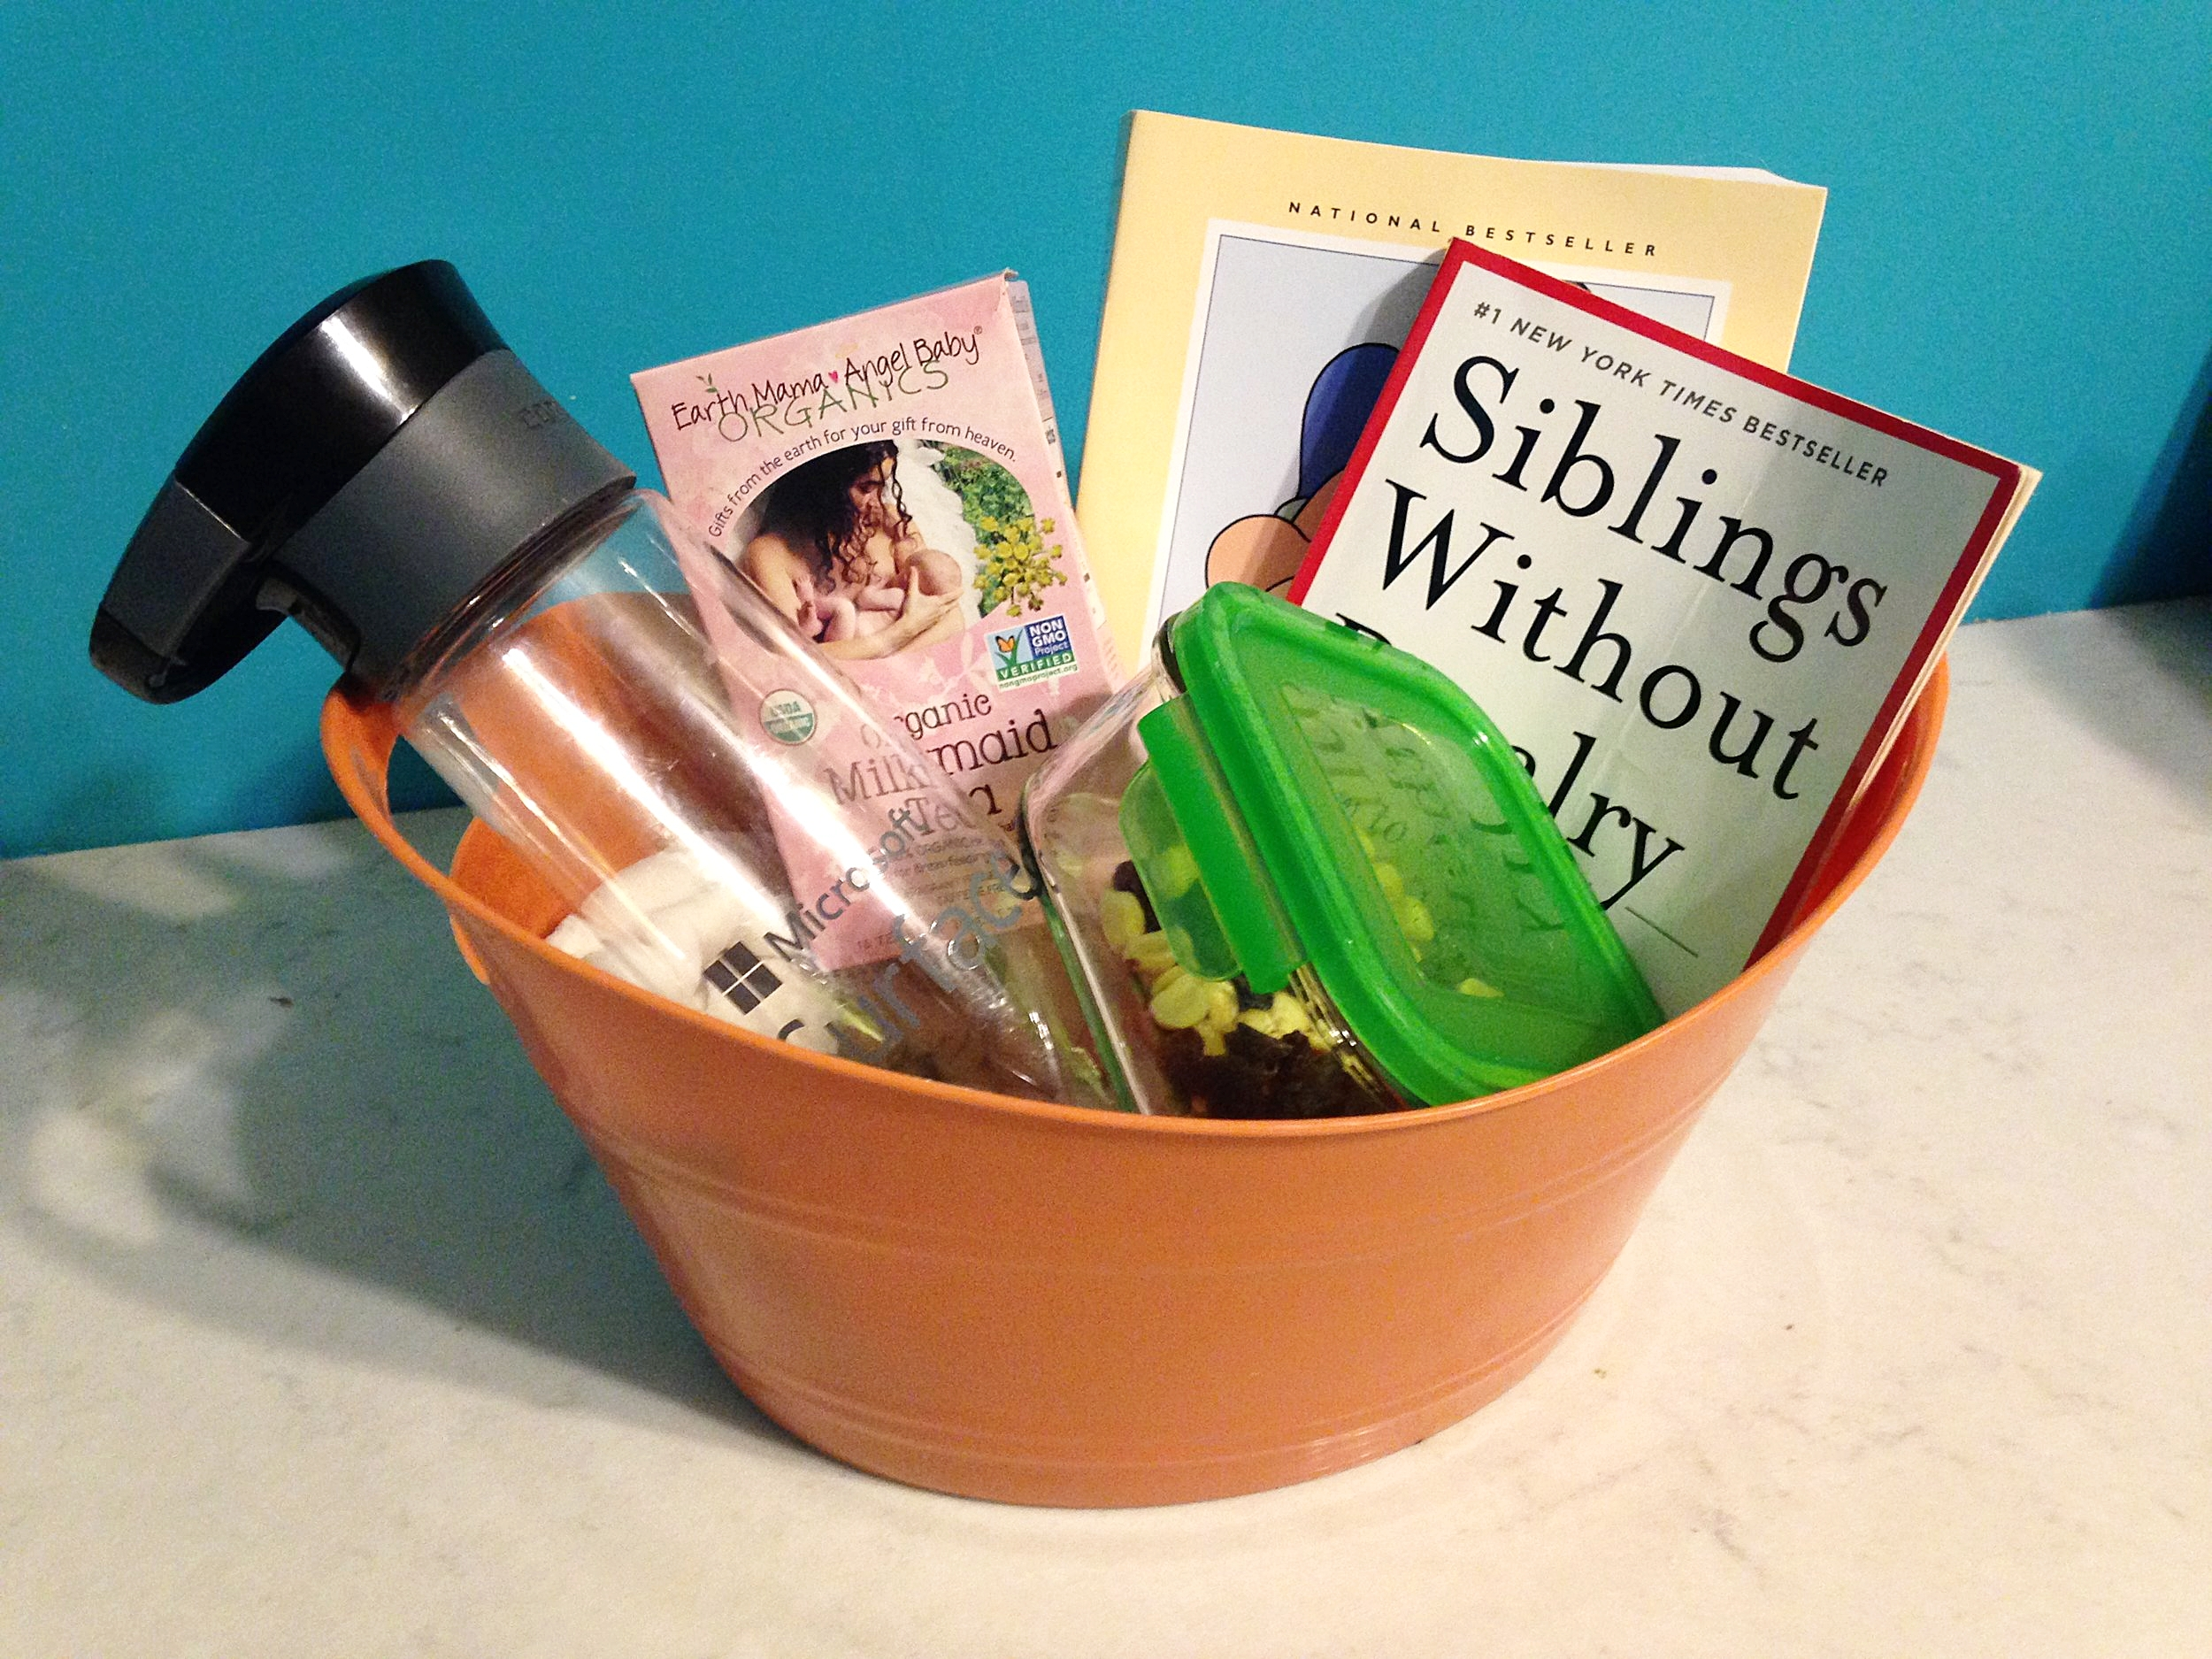 Some great items to have in your feeding basket to have on hand. (Image: An orange basket holding a water bottle, trail mix, some books, and a box of milkmaid tea).